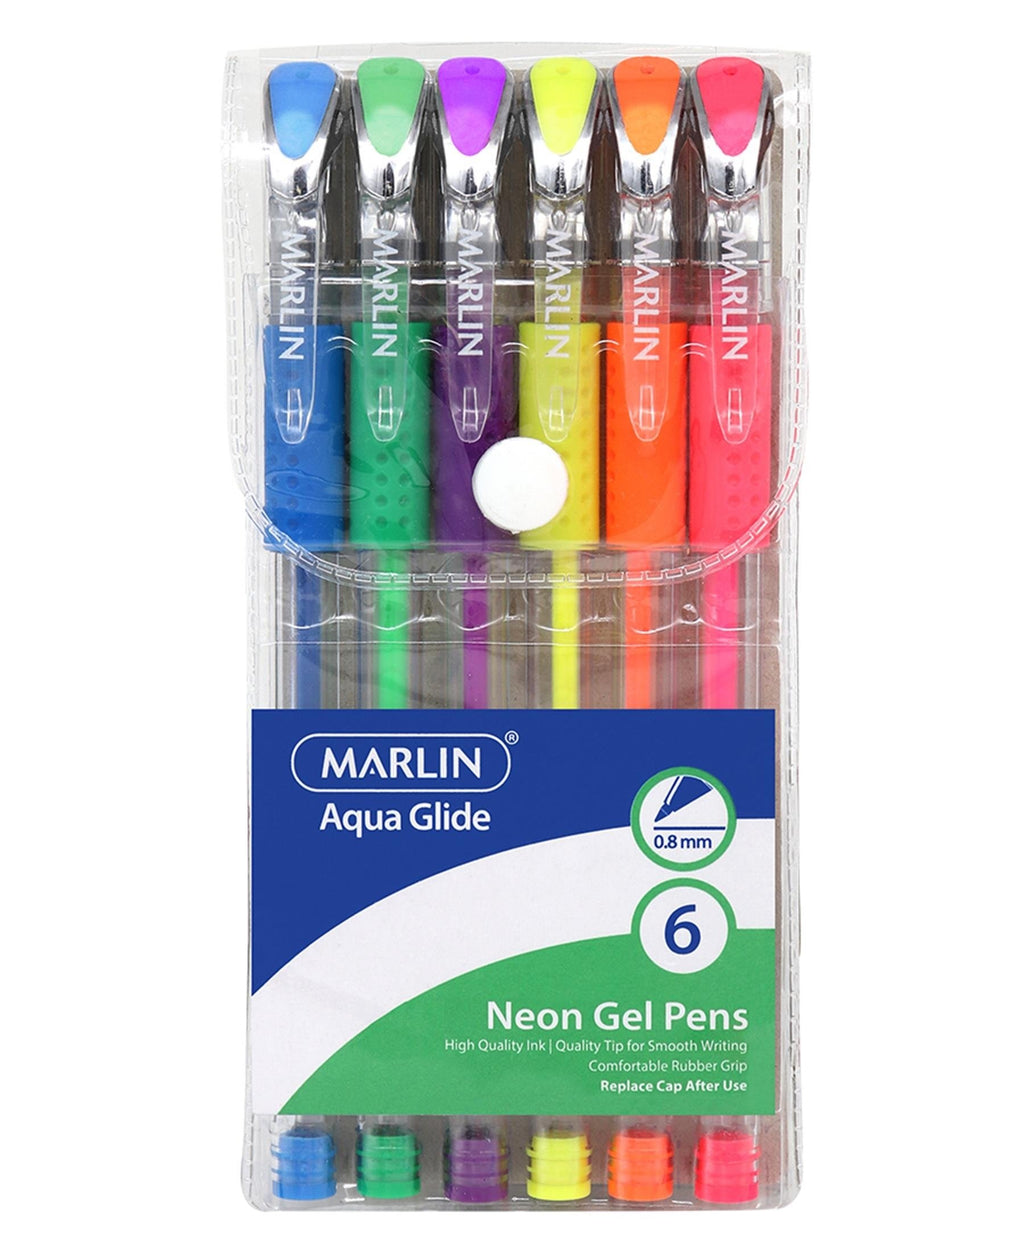 Marlin 6 Pack Aqua Glide Neon Gel Pens - Multi